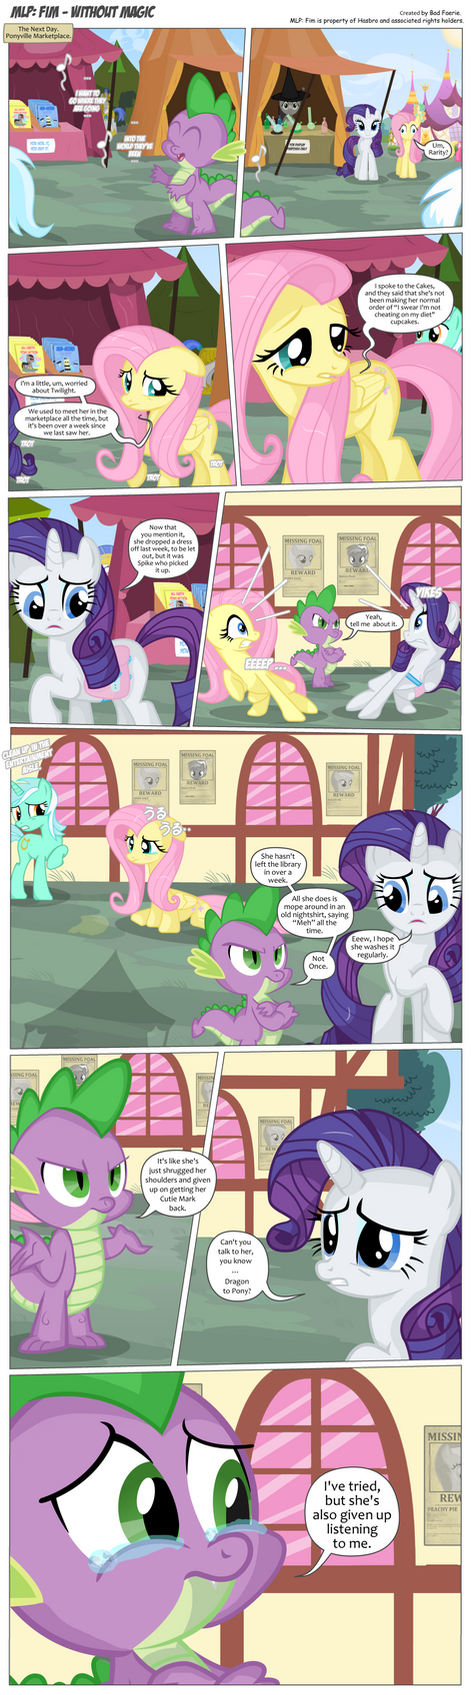 MLP: FiM - Without Magic Page 102 by PerfectBlue97